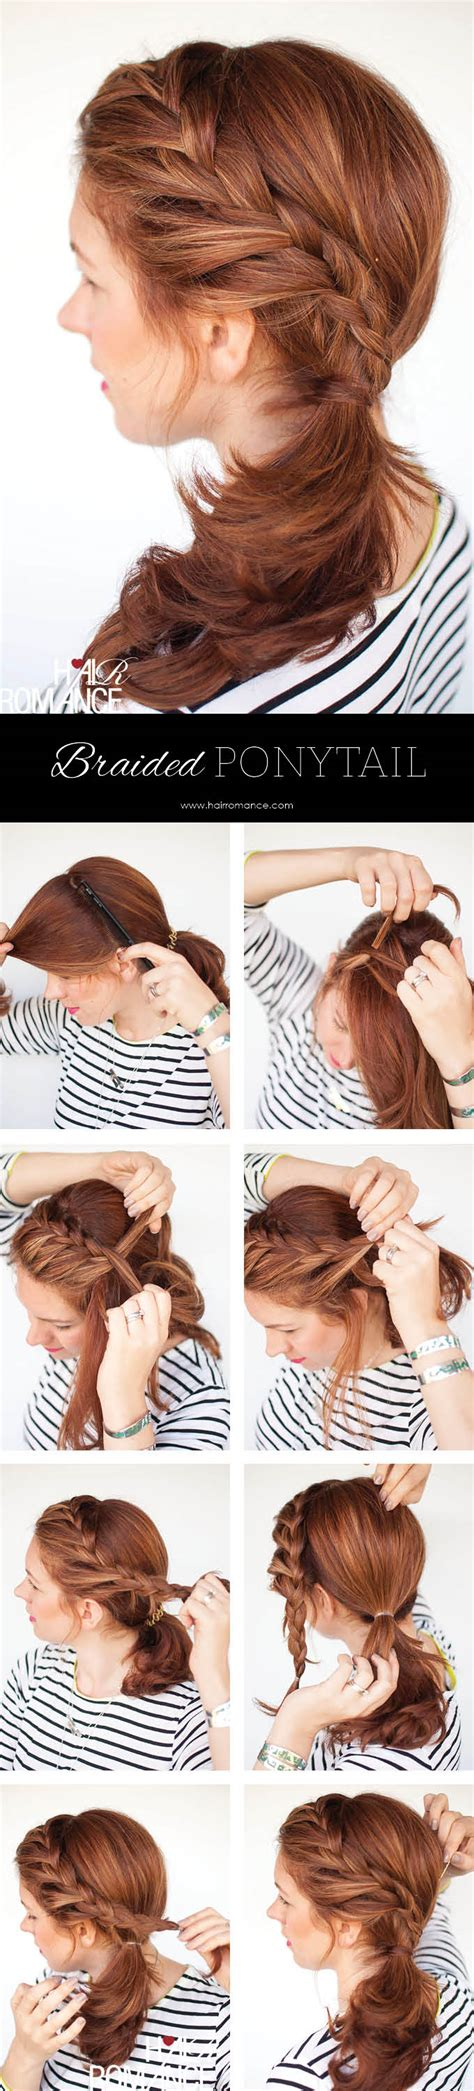 easy braided ponytail hairstyle how to hair romance weekend style braided ponytail tutorial hair romance